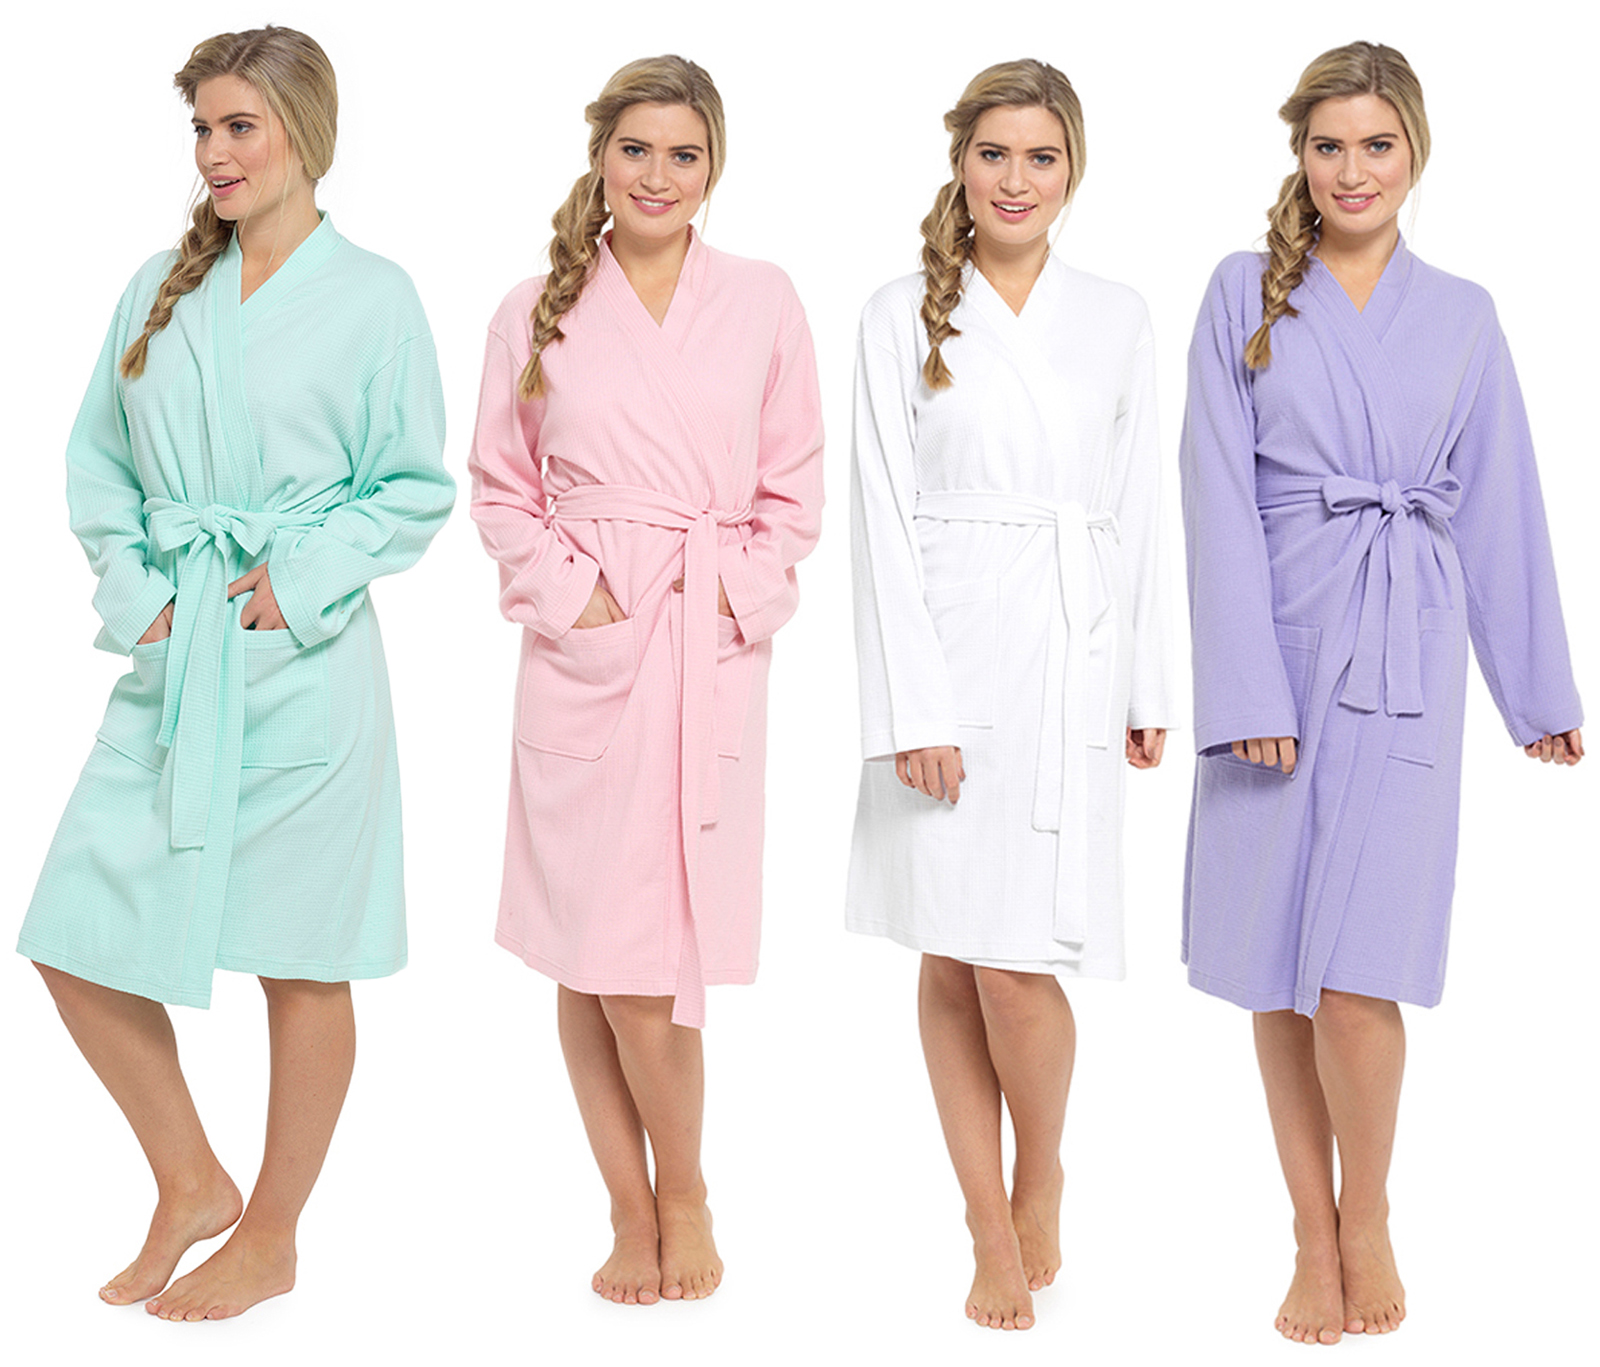 CCcollections Kimono 16 Colours Peacock Premium Dressing Gown Robe Light Weight Lounge wear. by CCcollections. $ - $ $ 11 $ 15 99 Prime. FREE Shipping on eligible orders. Some colors are Prime eligible. out of 5 stars